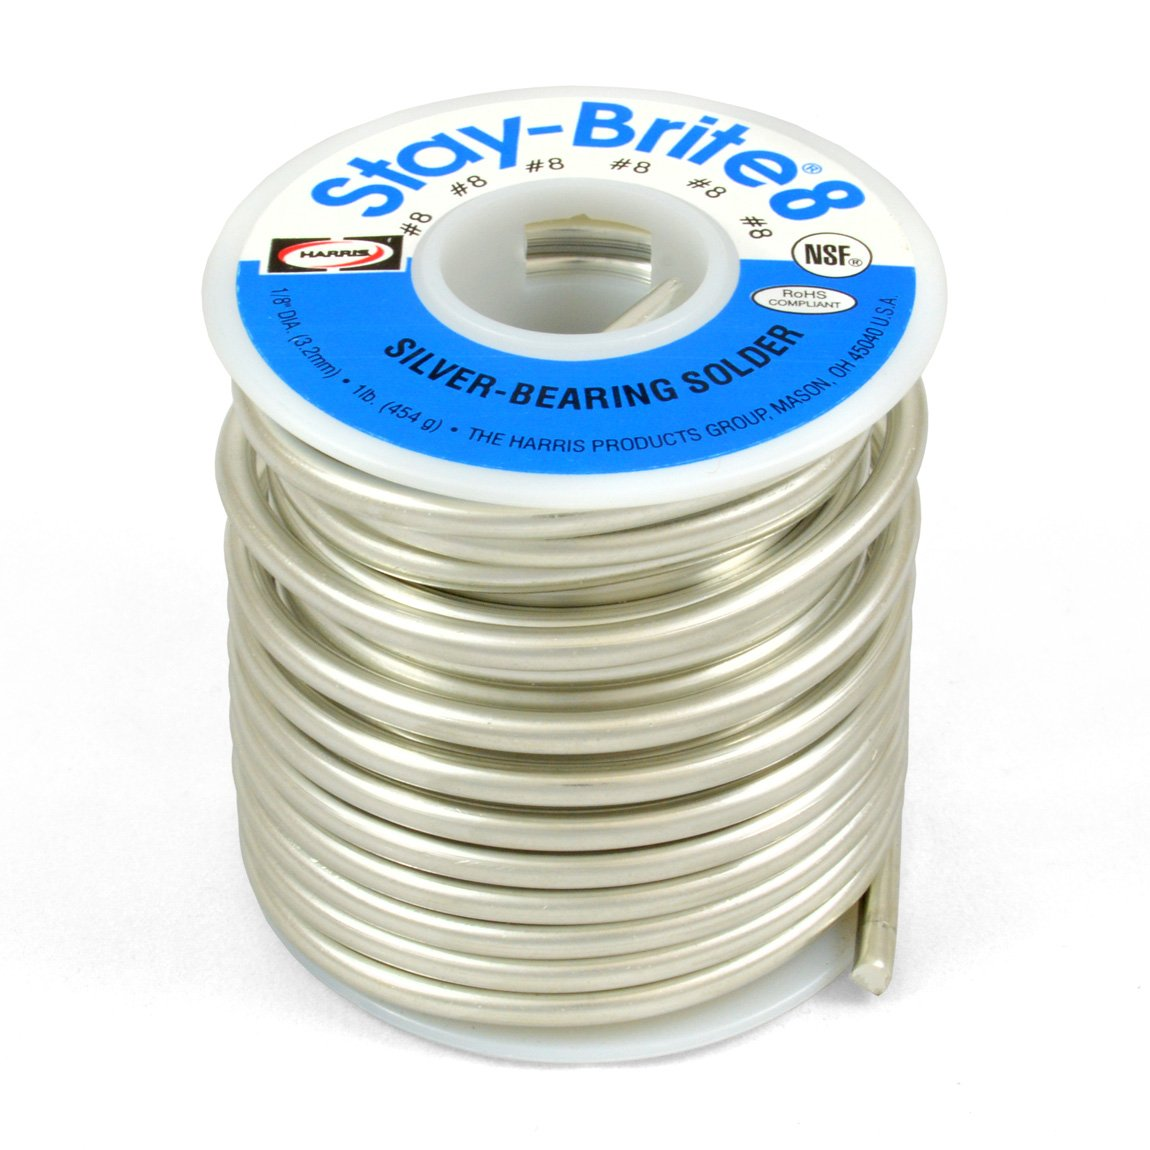 Stay-brite 8 1/8'' 1#10009 (348-SB861) Category: Solder Alloys and Fluxes